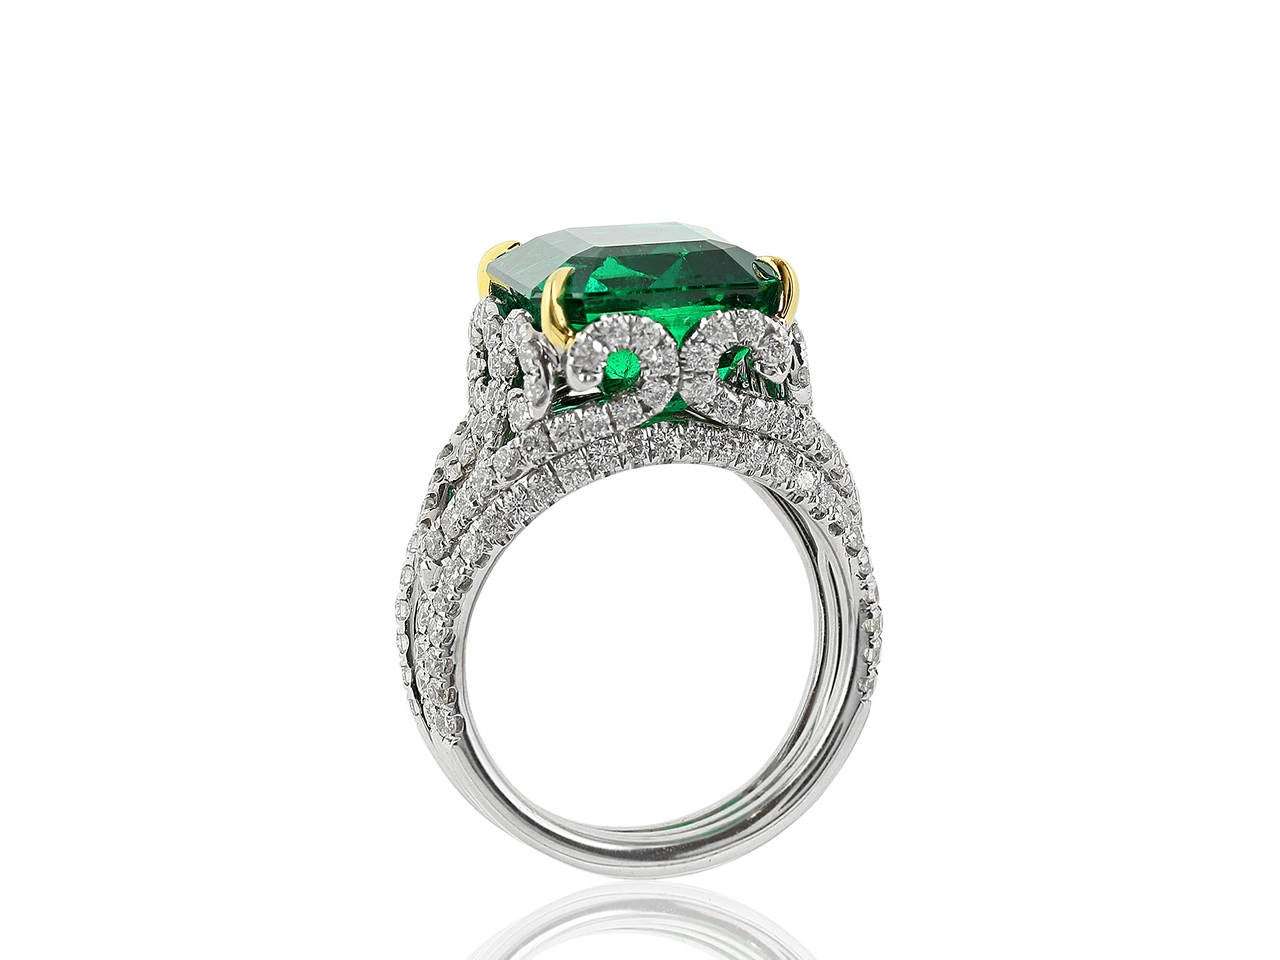 10 18 carat emerald two color gold ring for sale